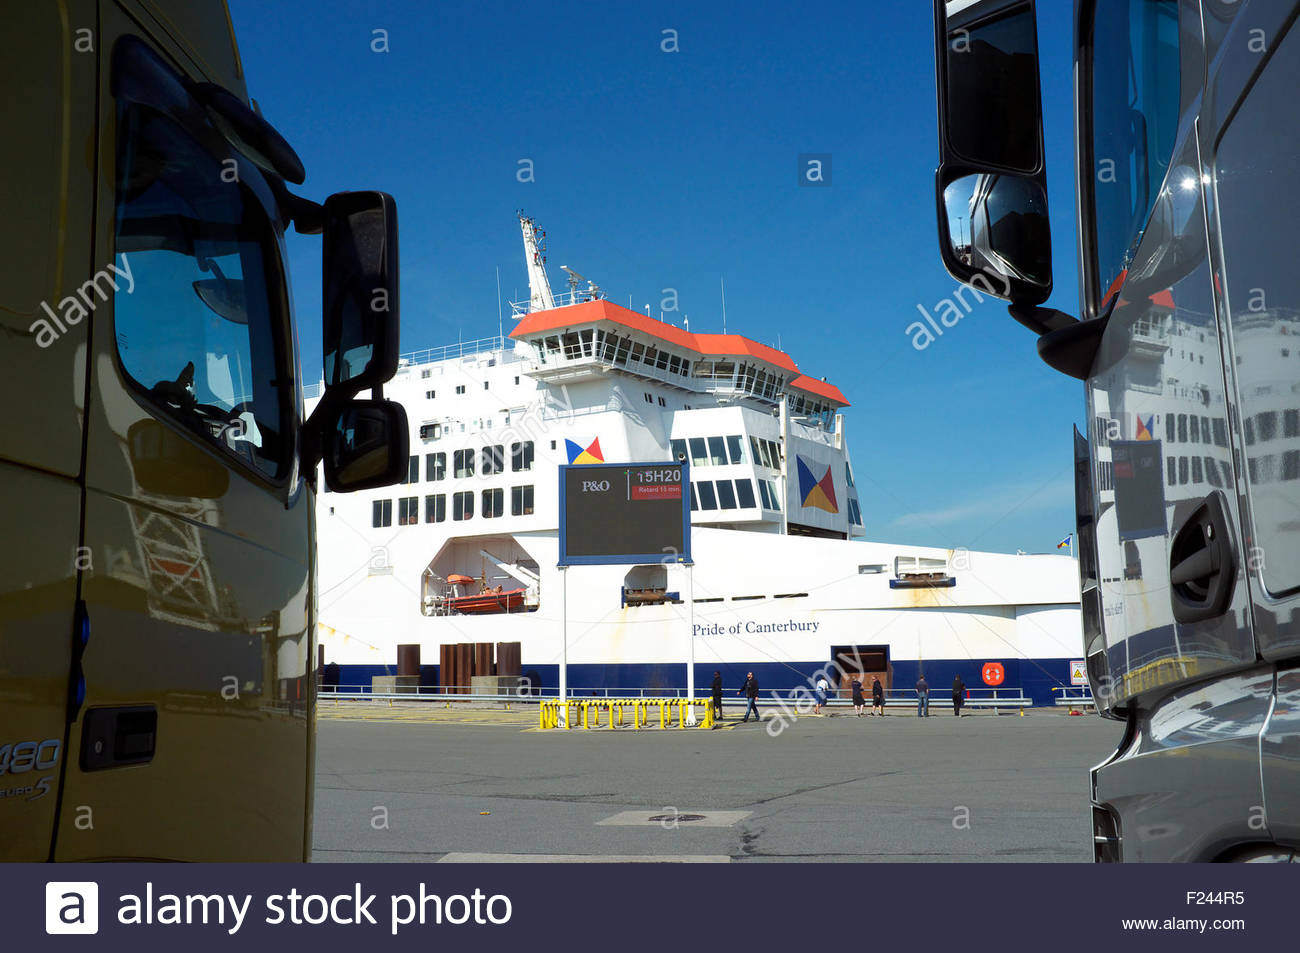 Trucks waiting to embark a Dover bound P & O ferry at Calais, in northern France. - Stock Image